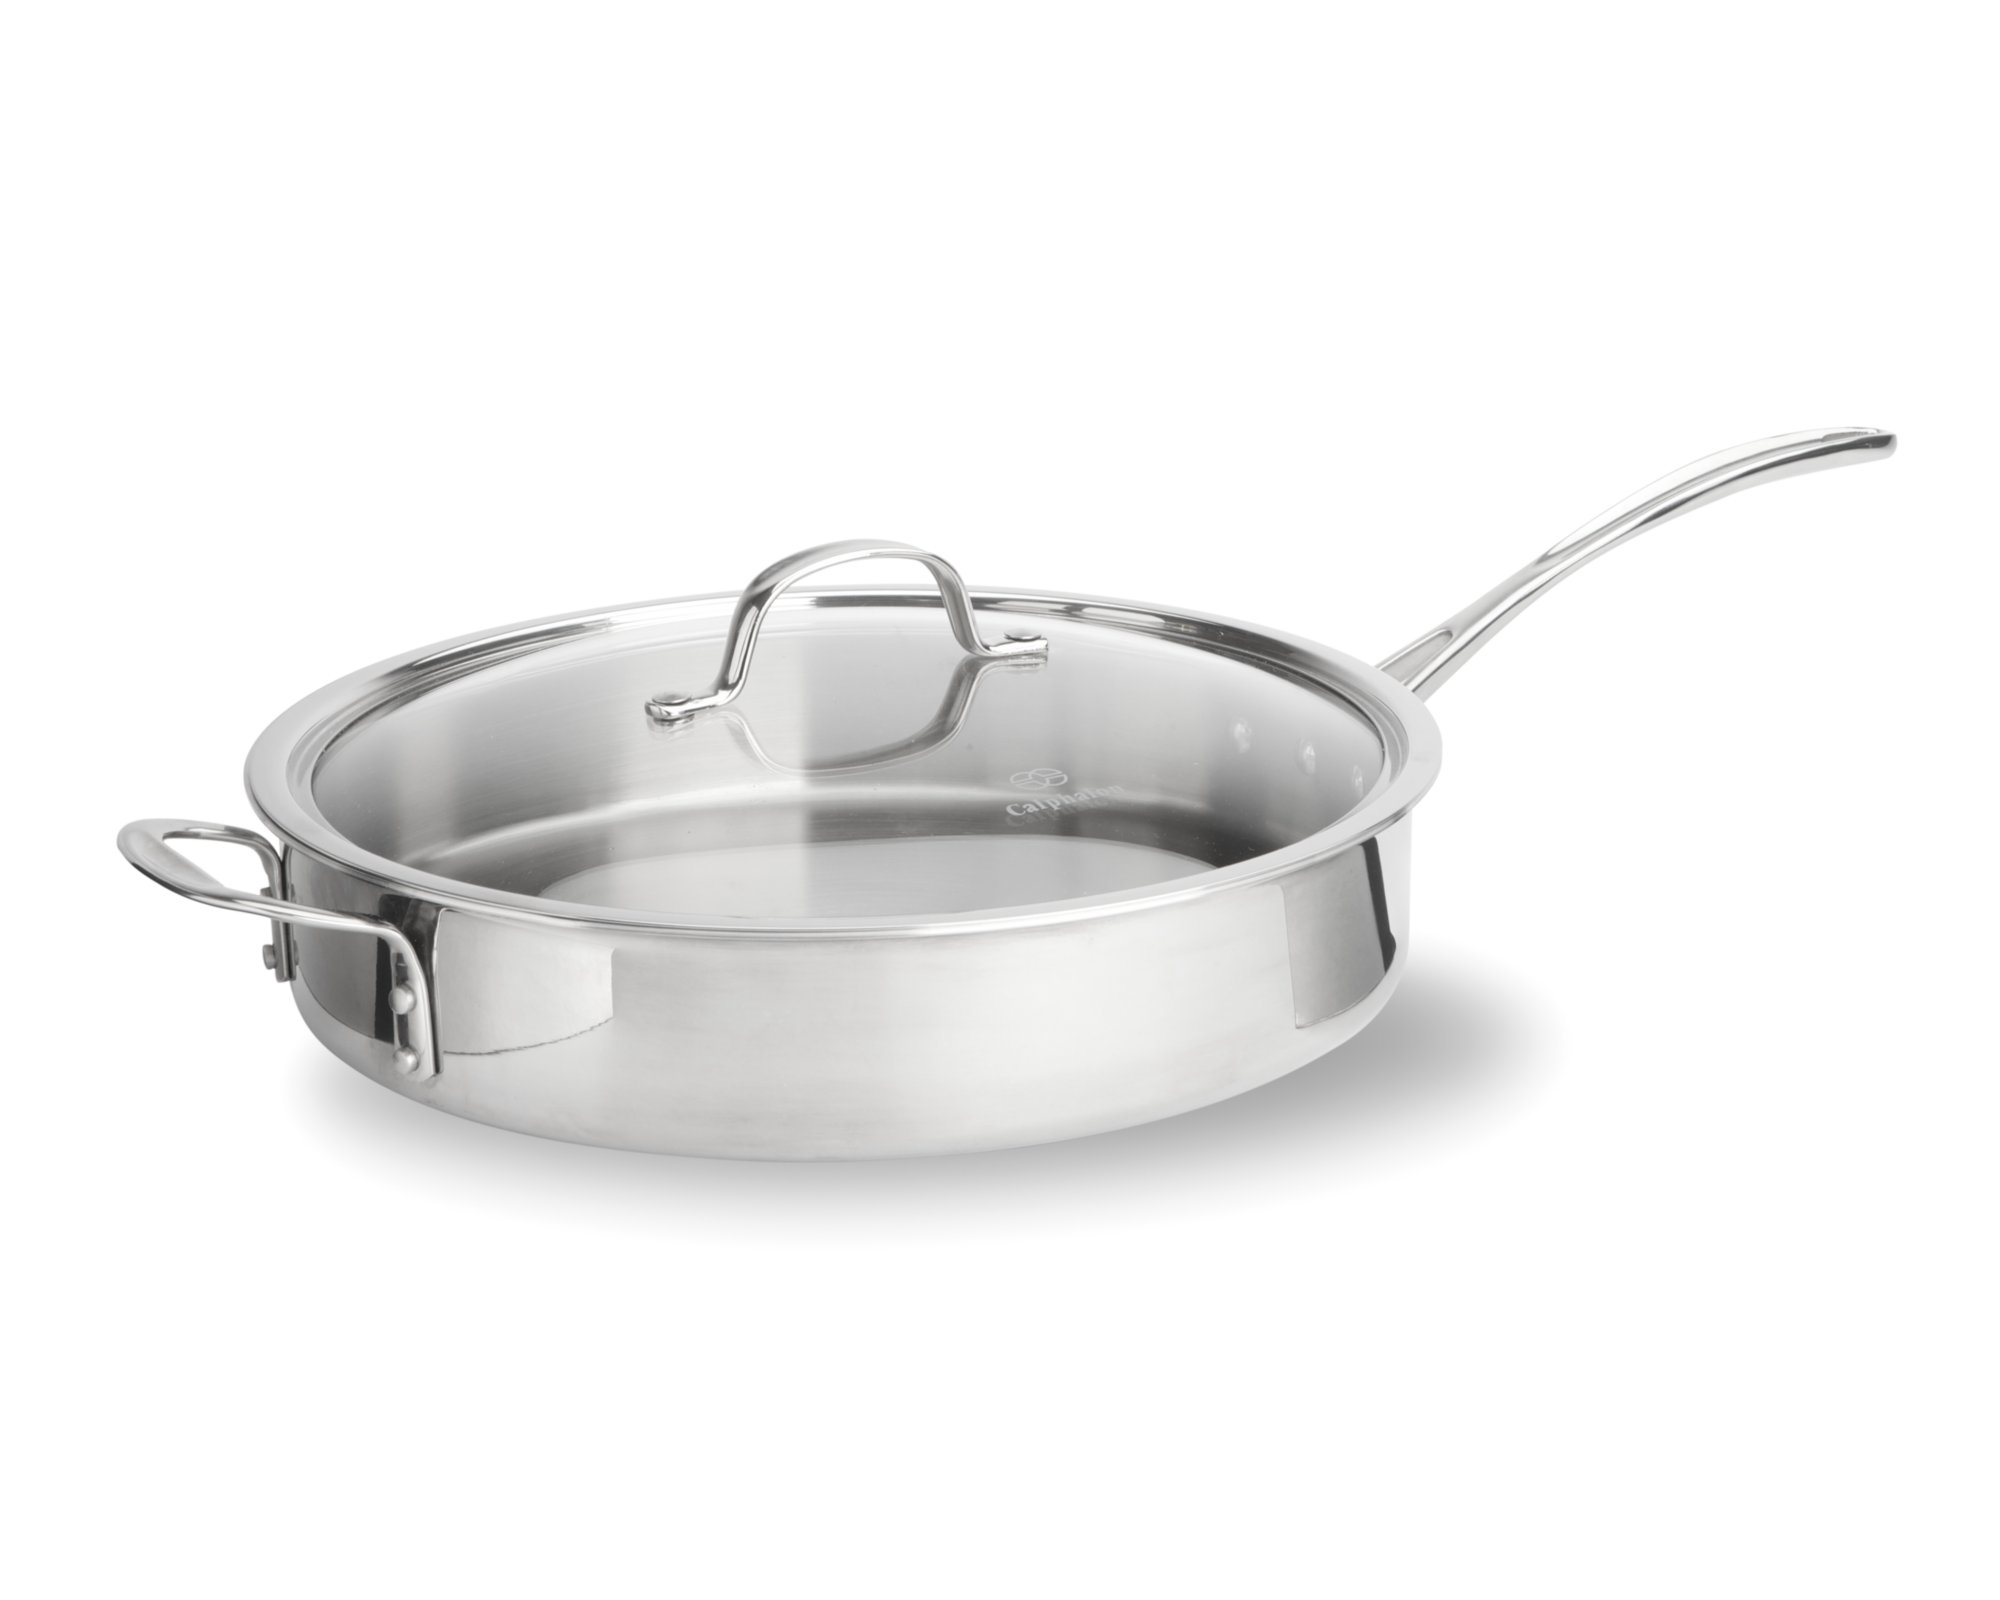 Calphalon Tri-Ply Stainless Steel 5-qt. Saute Pan with Cover